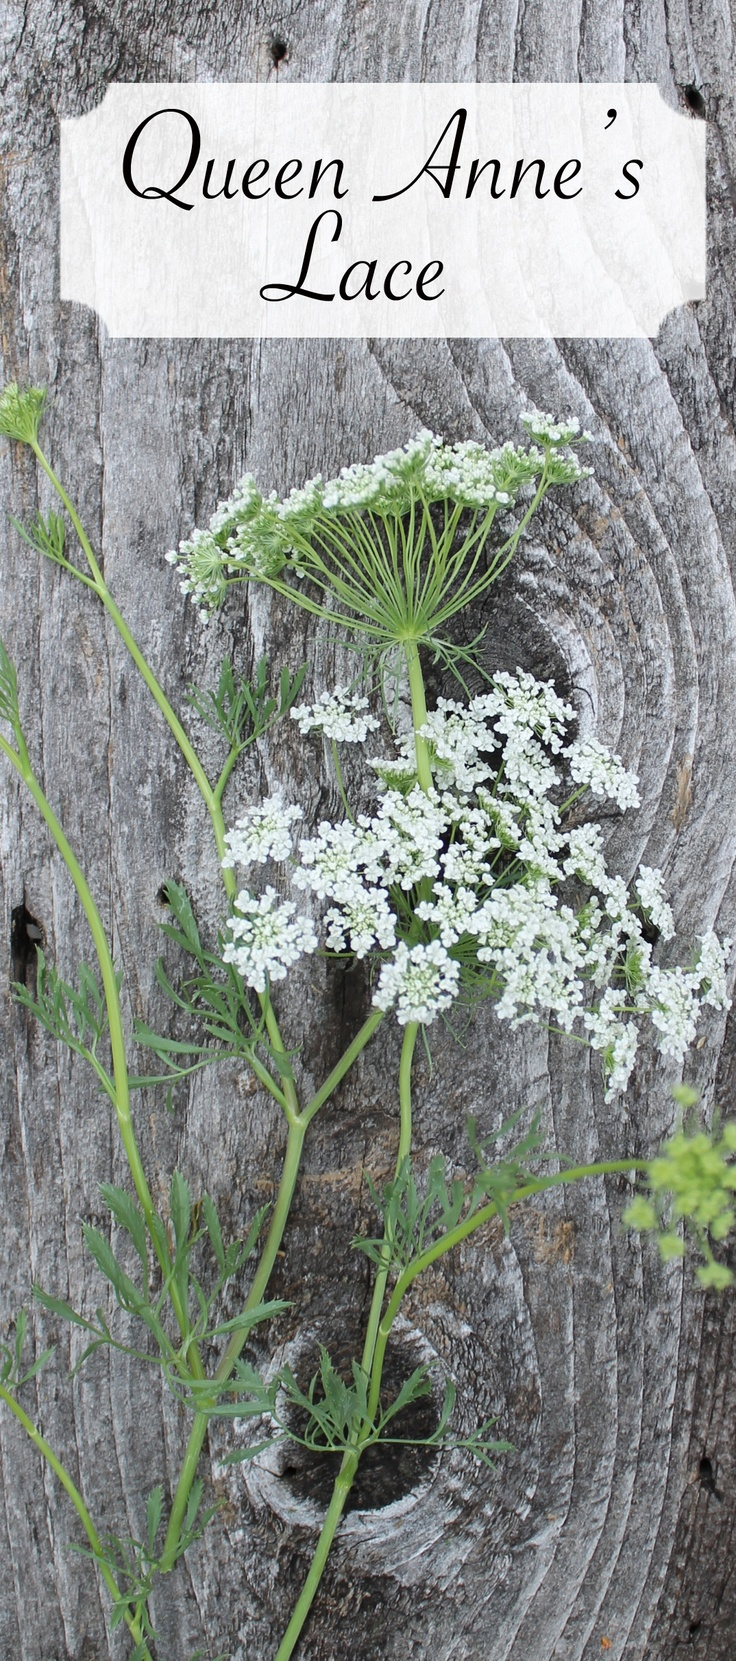 Queen Anne's Lace pretty for the rustic wildflower look. comes in white and green